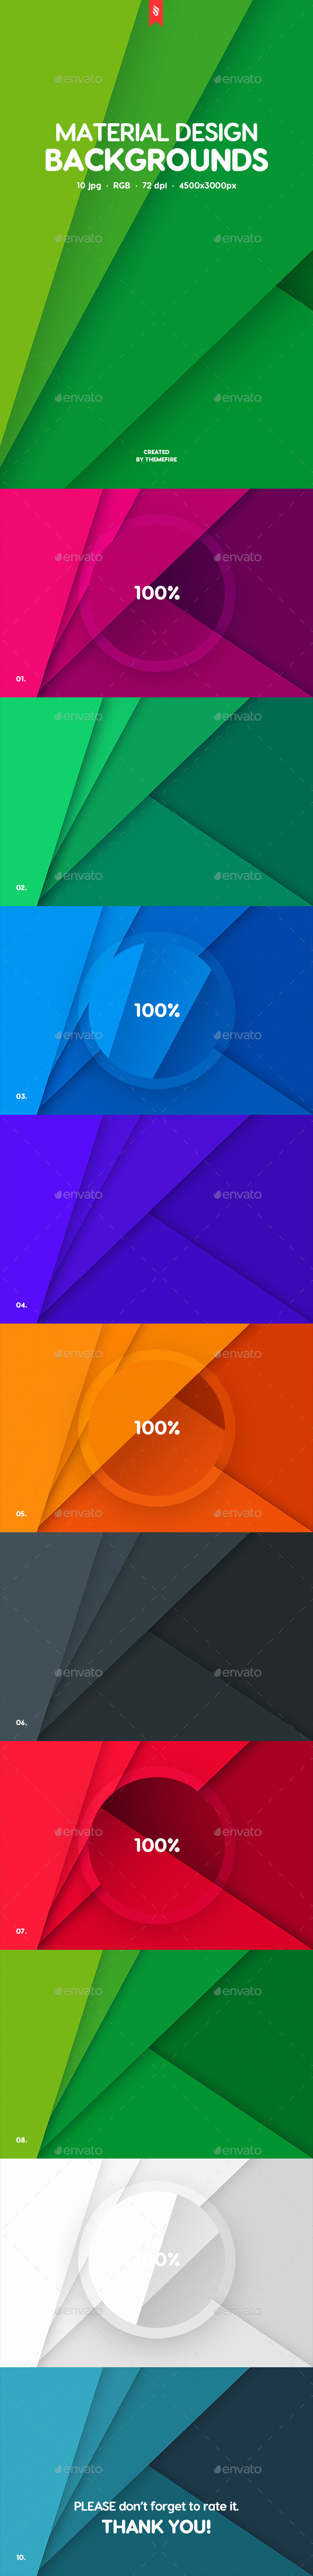 Flat Material Design Backgrounds - Patterns Backgrounds